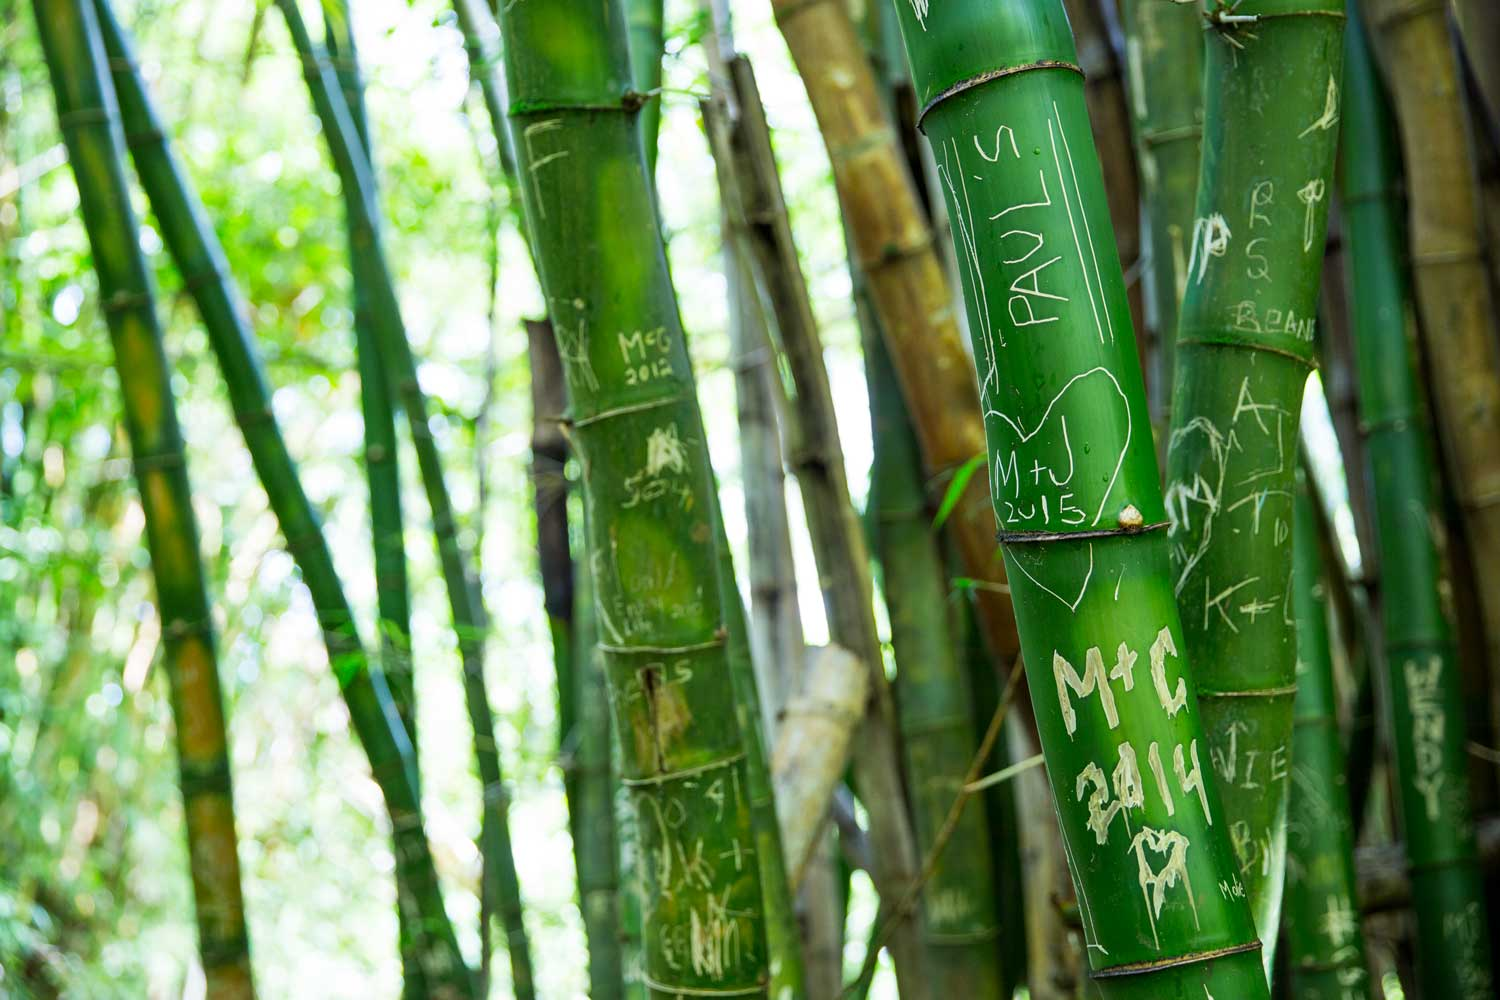 Pacific Real Estate Services - Bamboo